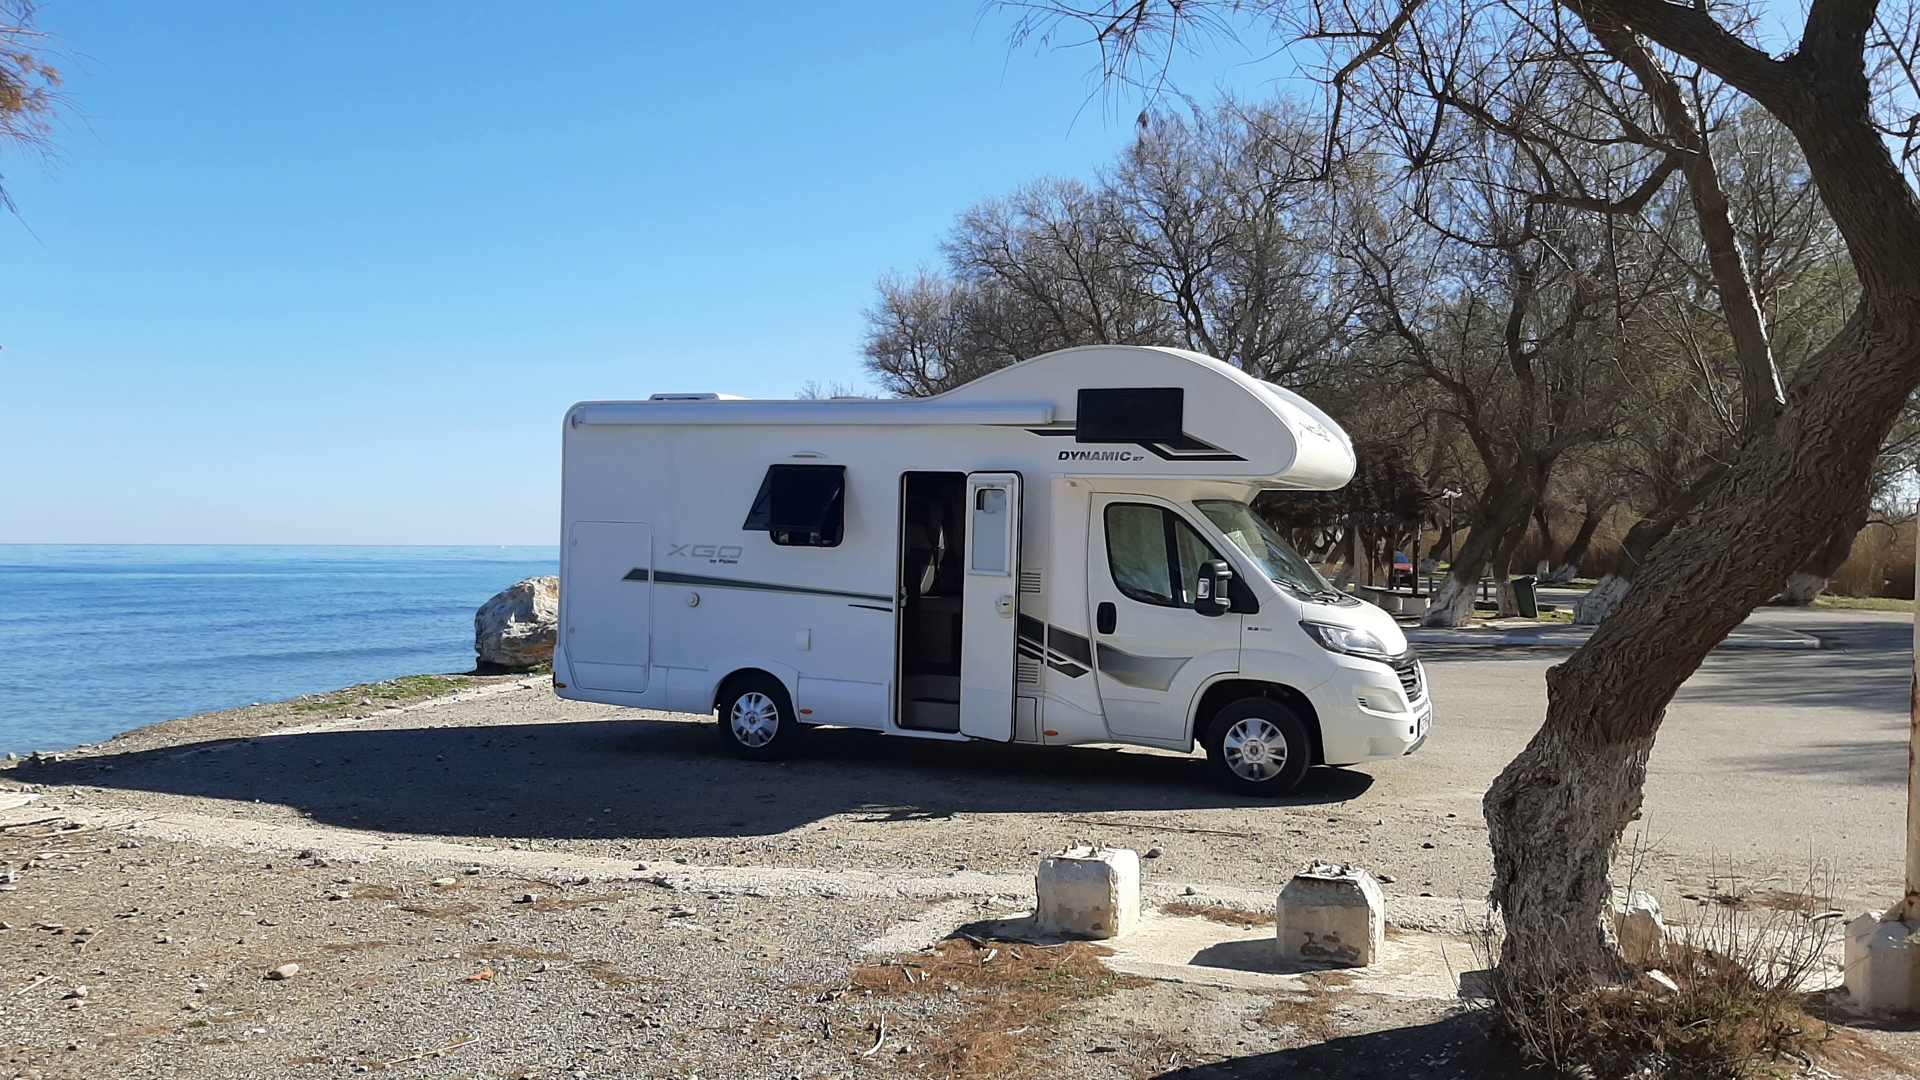 First campervan rental business in Crete, Greece